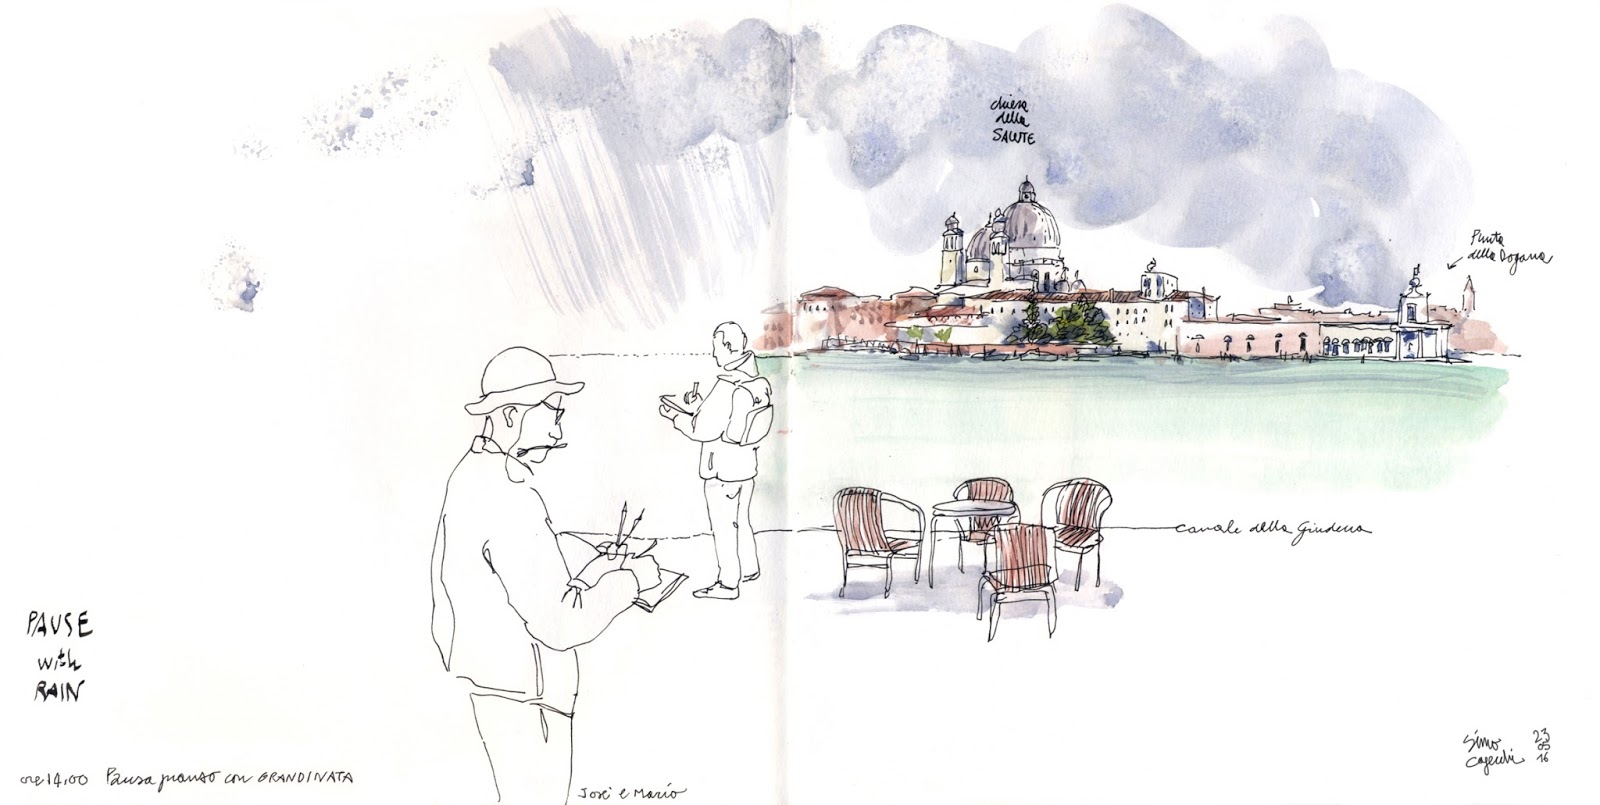 1c3d6623abe7f Reporting from Giudecca, the other side of Venice /1 | Urban Sketchers